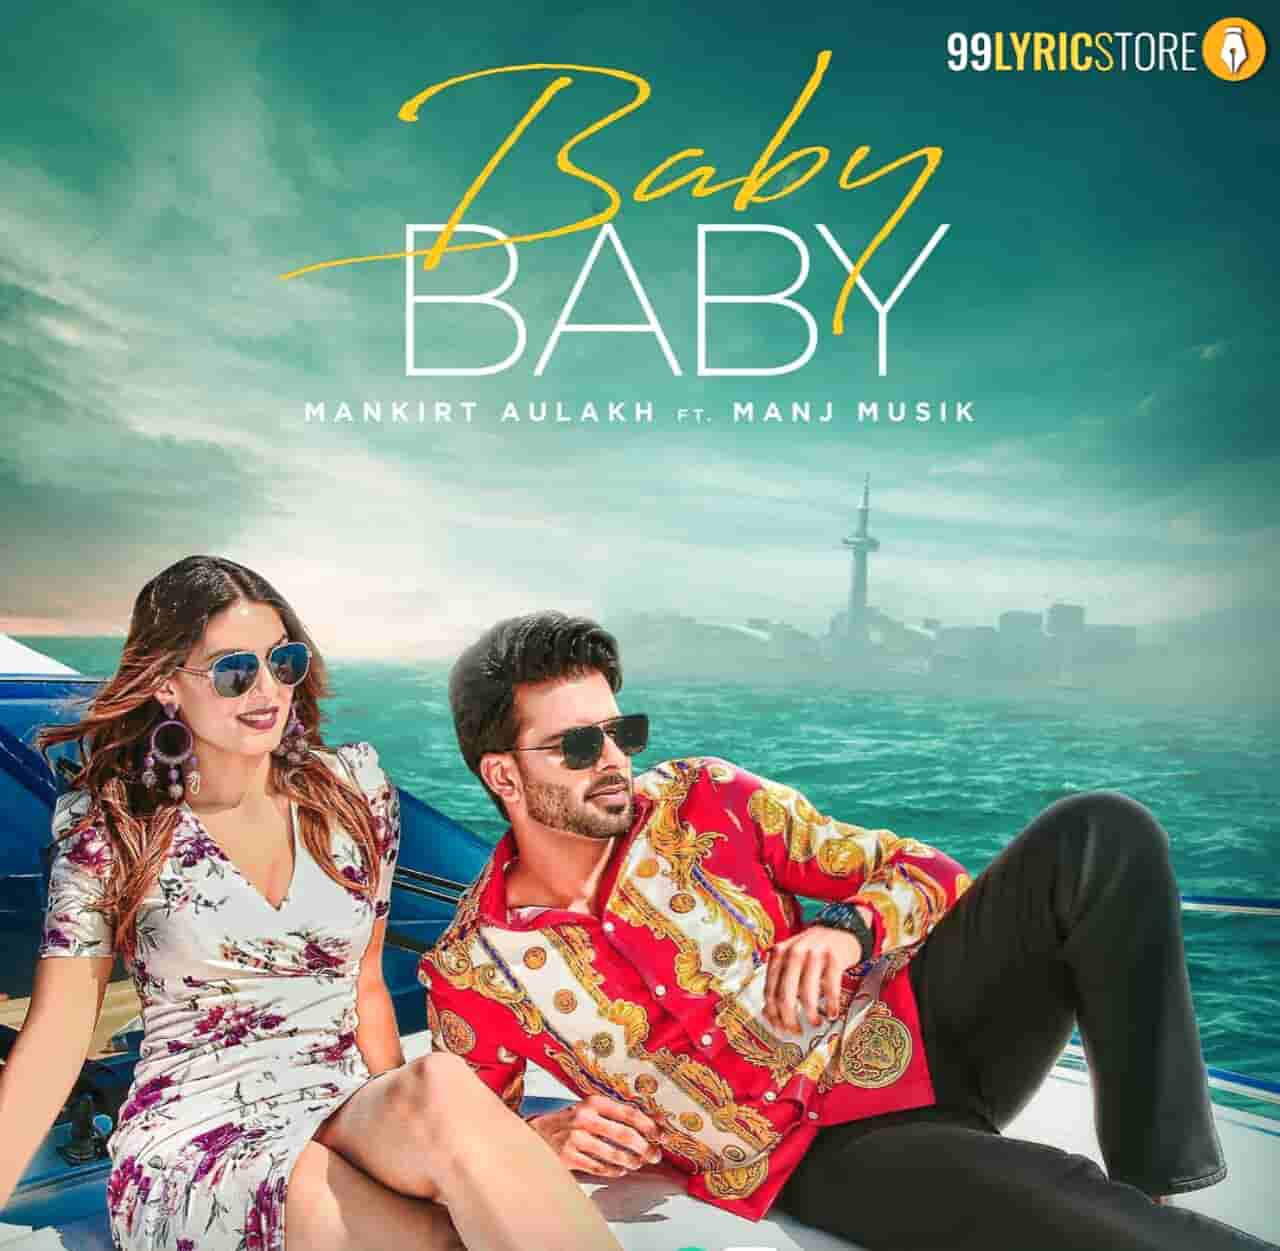 Baby Punjabi song lyrics sung by Mankirt Aulakh